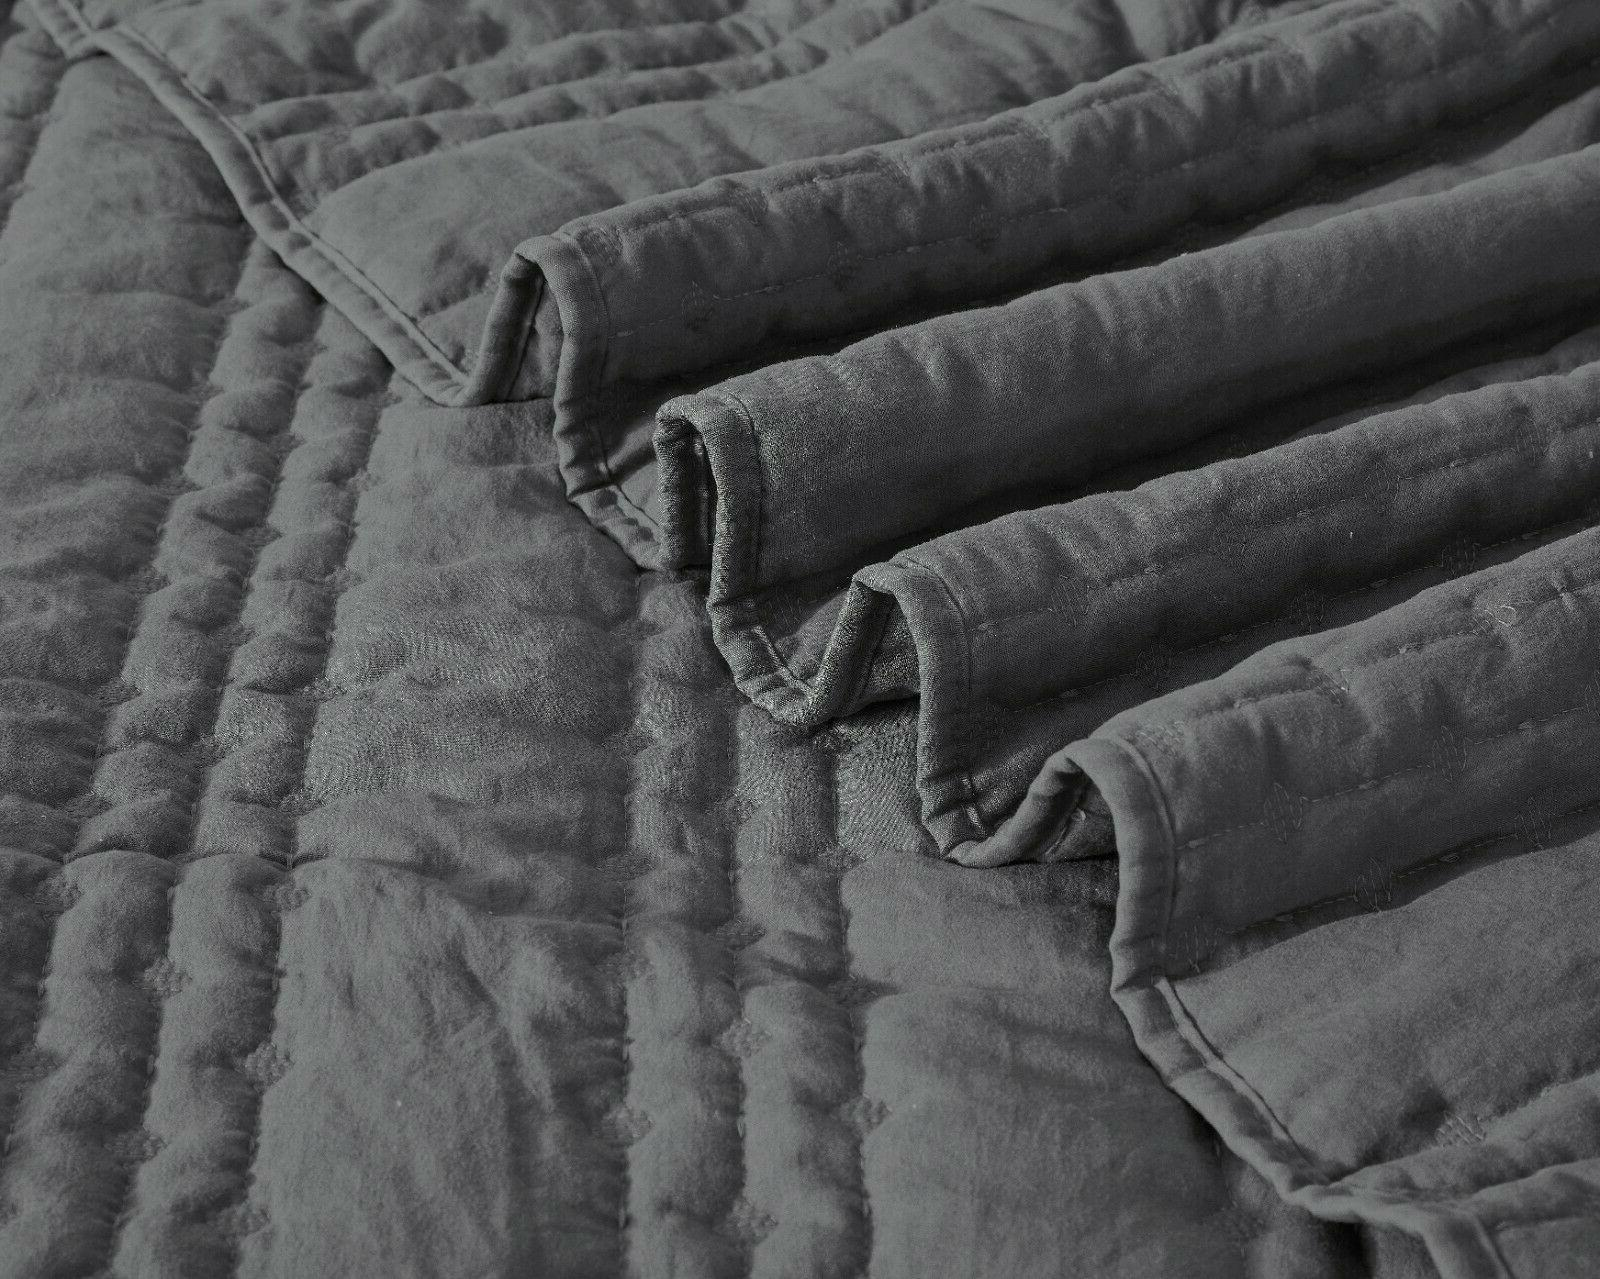 Charcoal Gray Bedspread Stone-Washed, Bed Cover